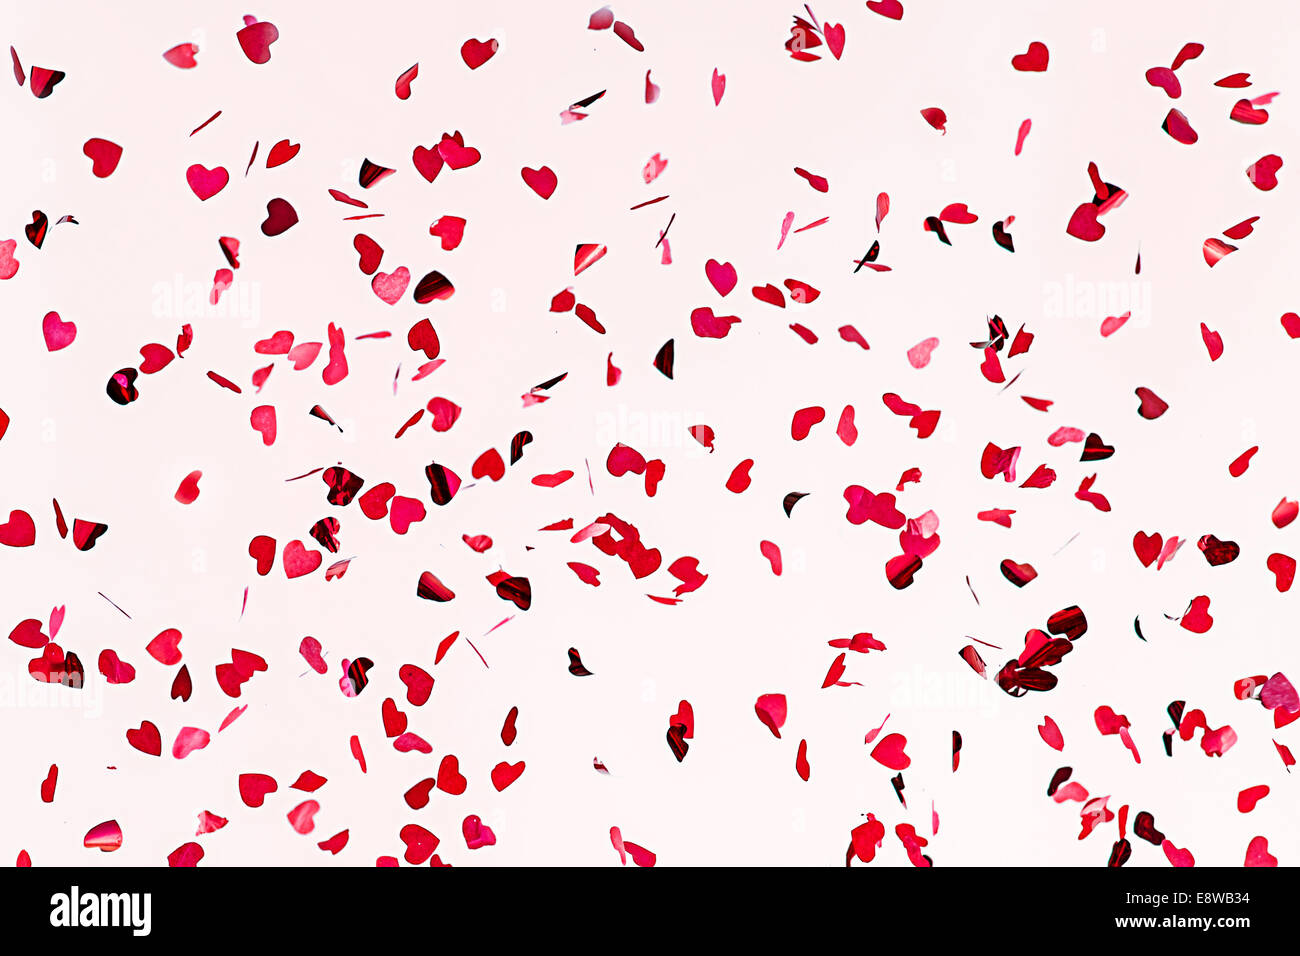 All You Need Is Love. Closeup view of confetti hearts of red color against pink background. - Stock Image